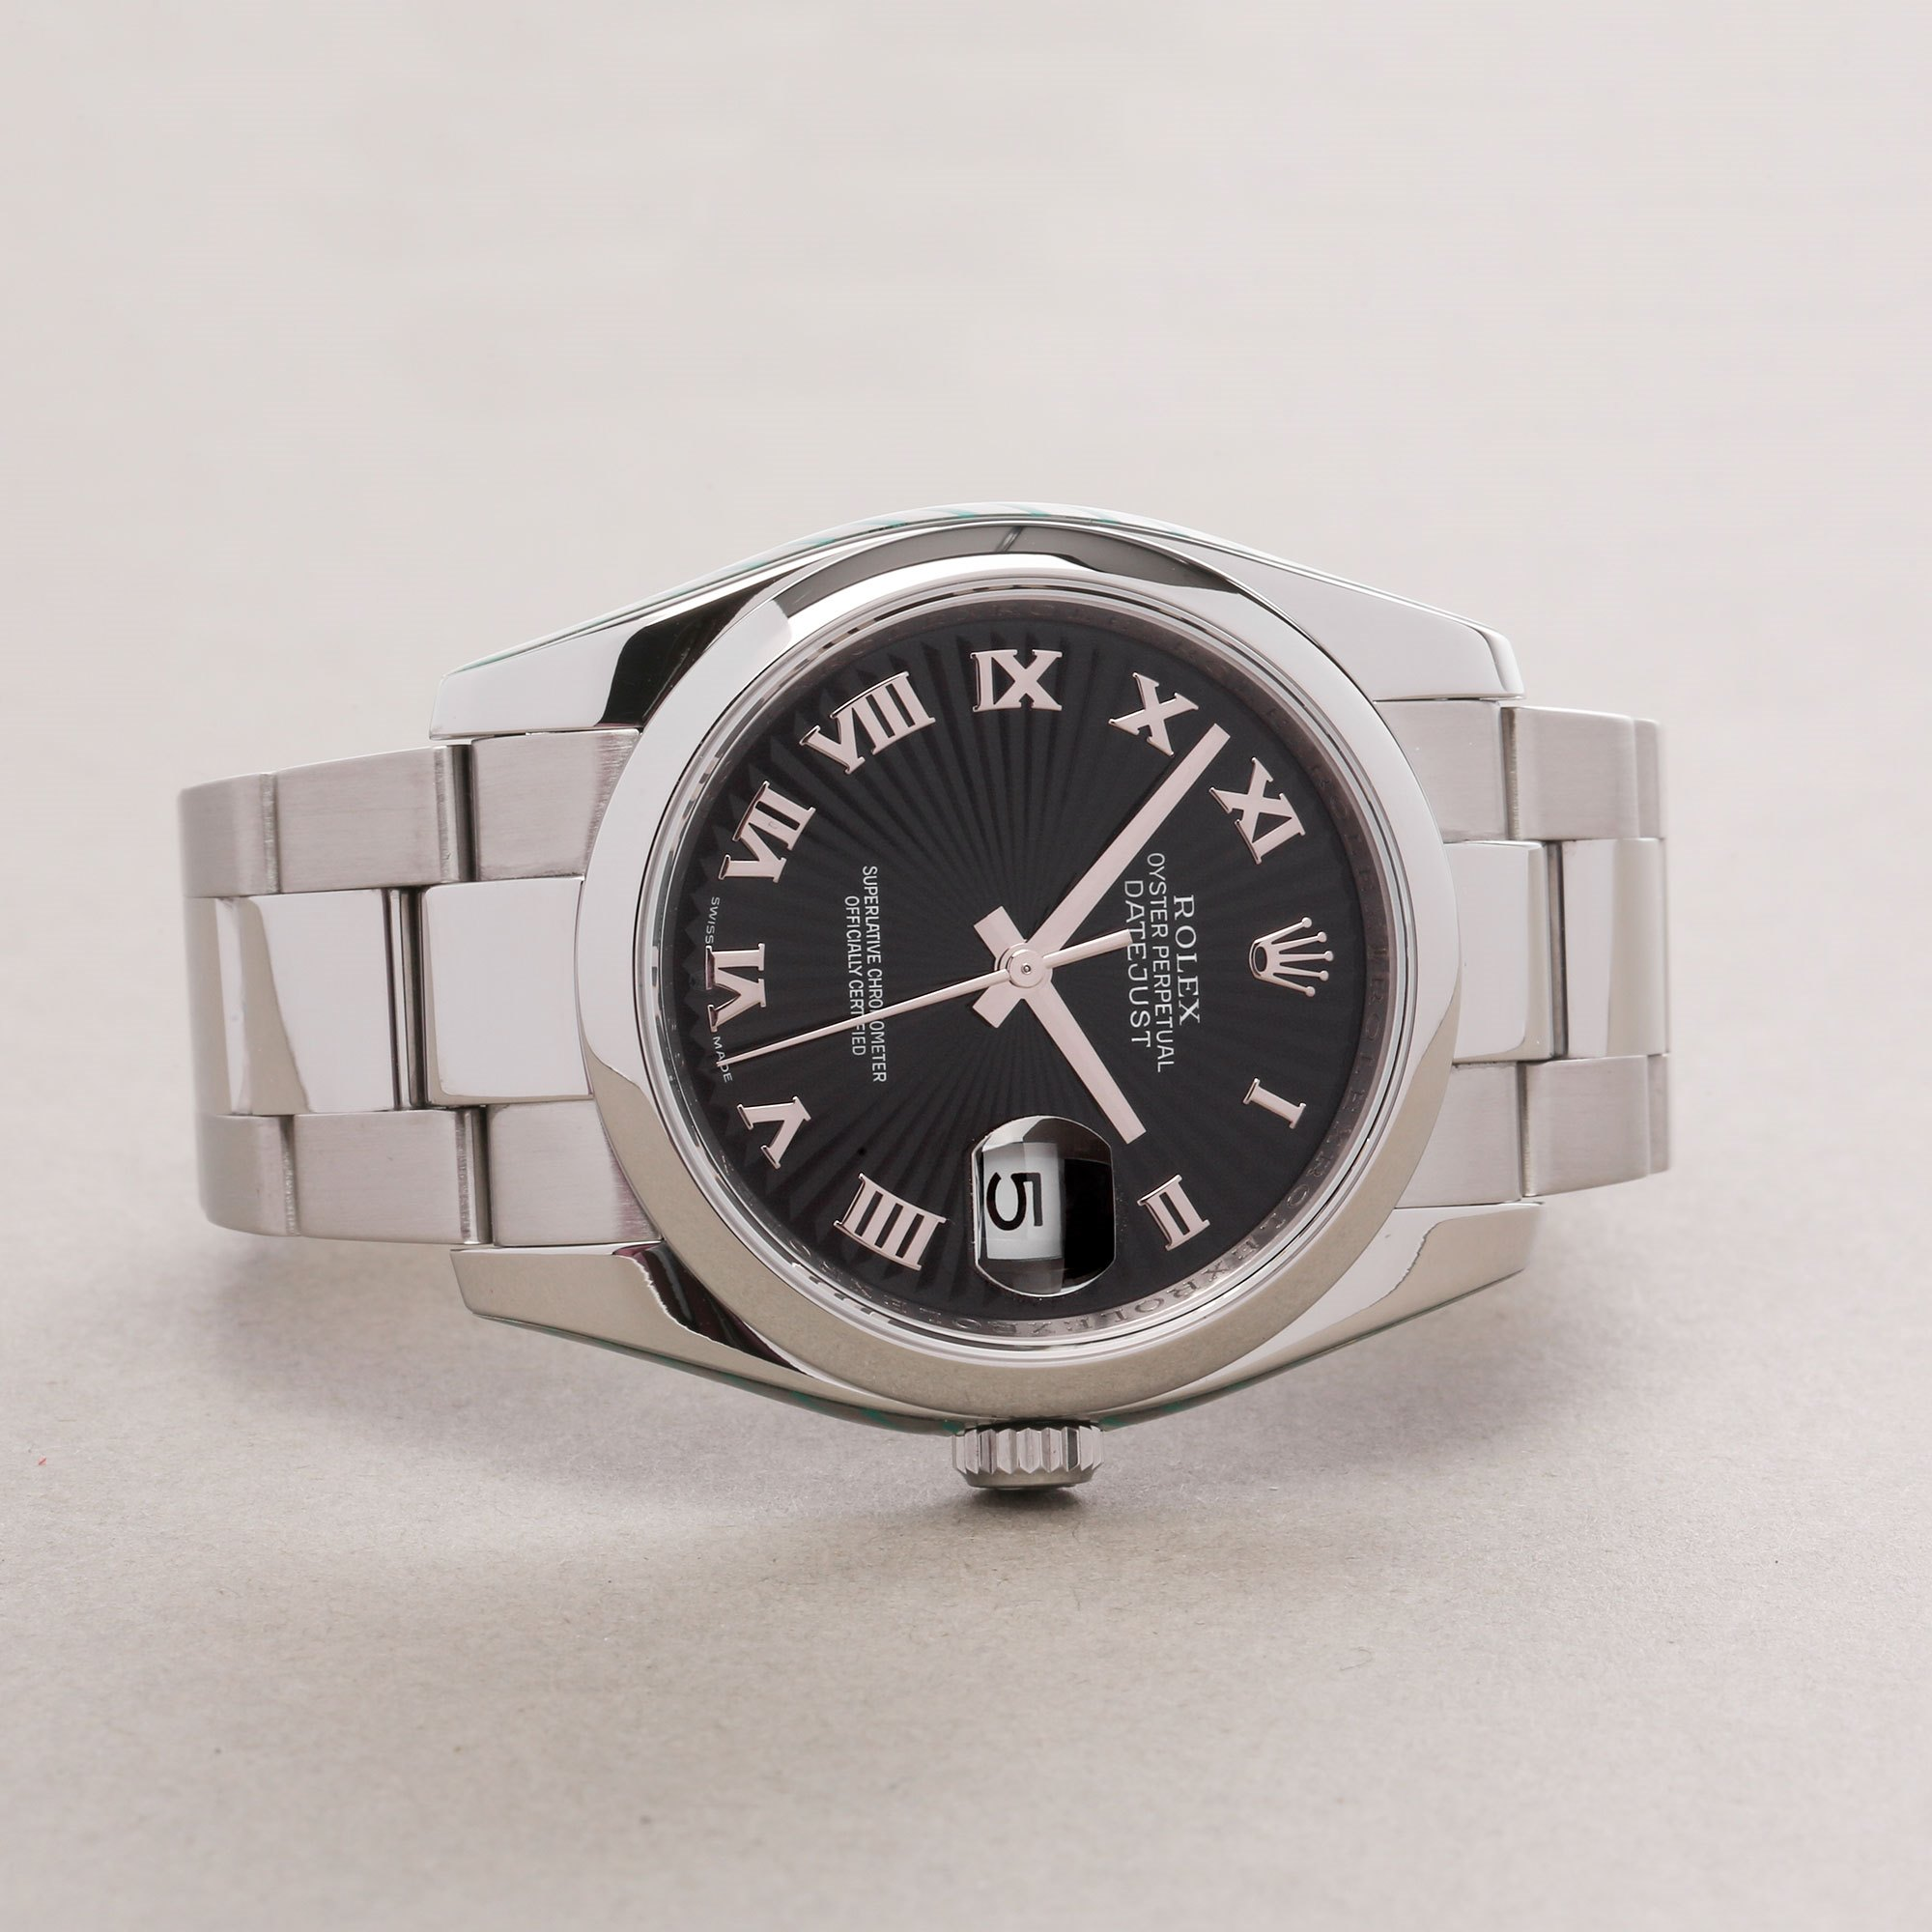 Rolex Datejust 36 116200 Men's Stainless Steel Watch - Image 9 of 12